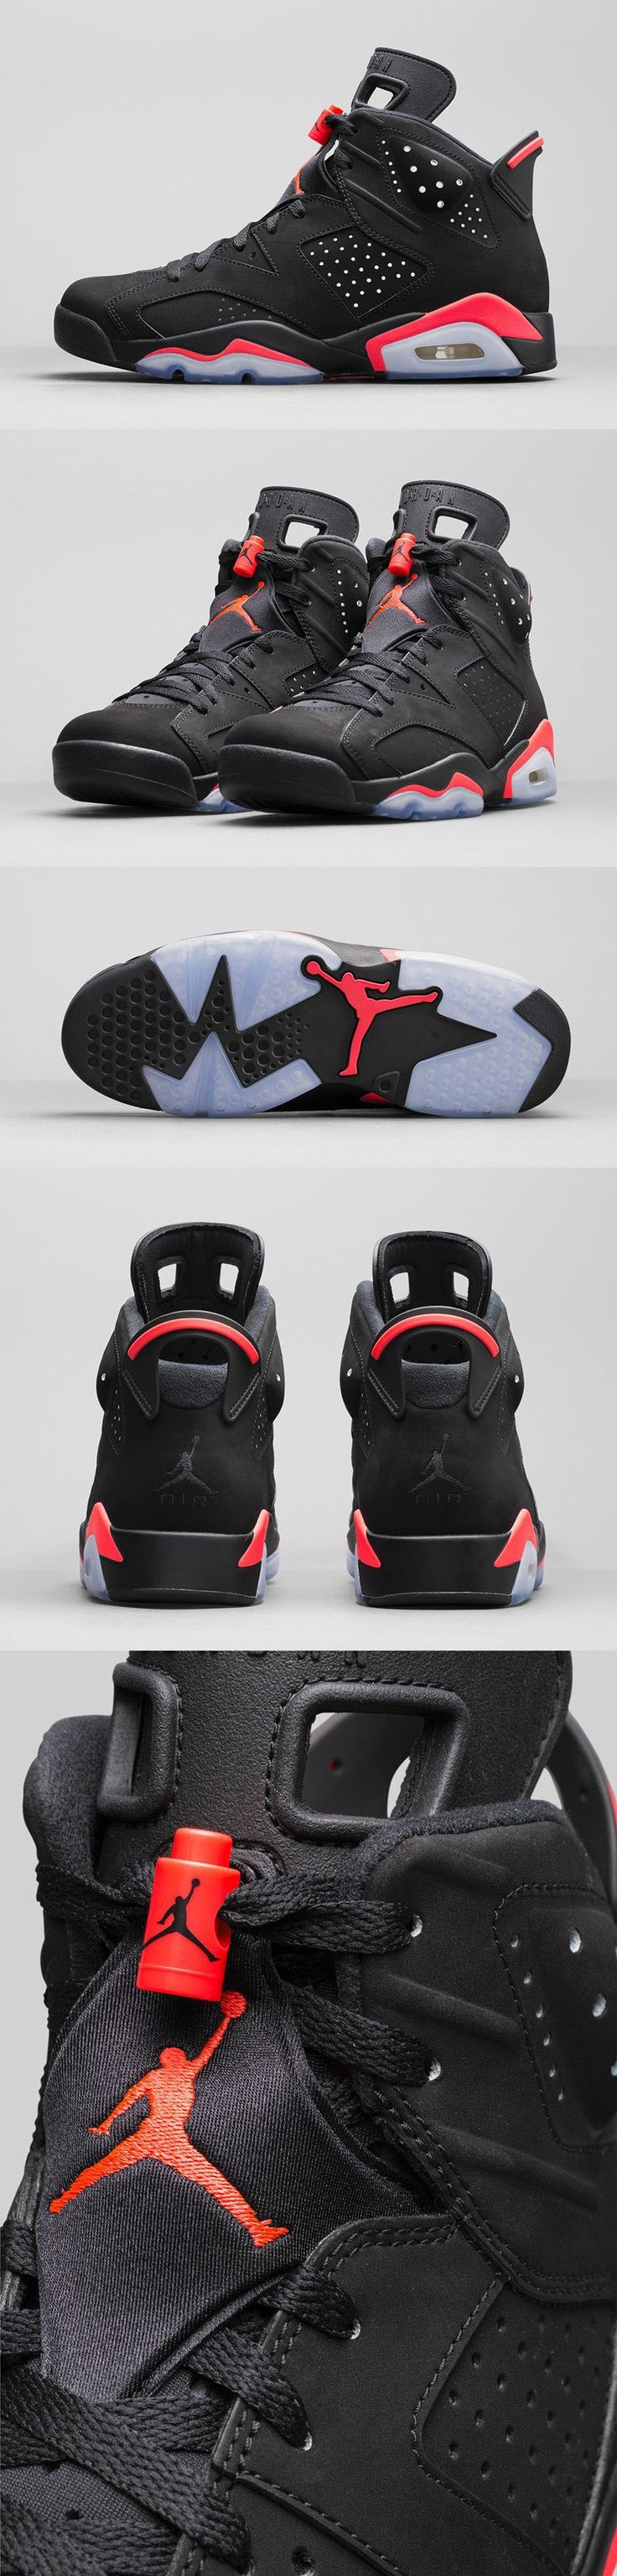 17 Best ideas about Air Jordans on Pinterest | Shoes jordans